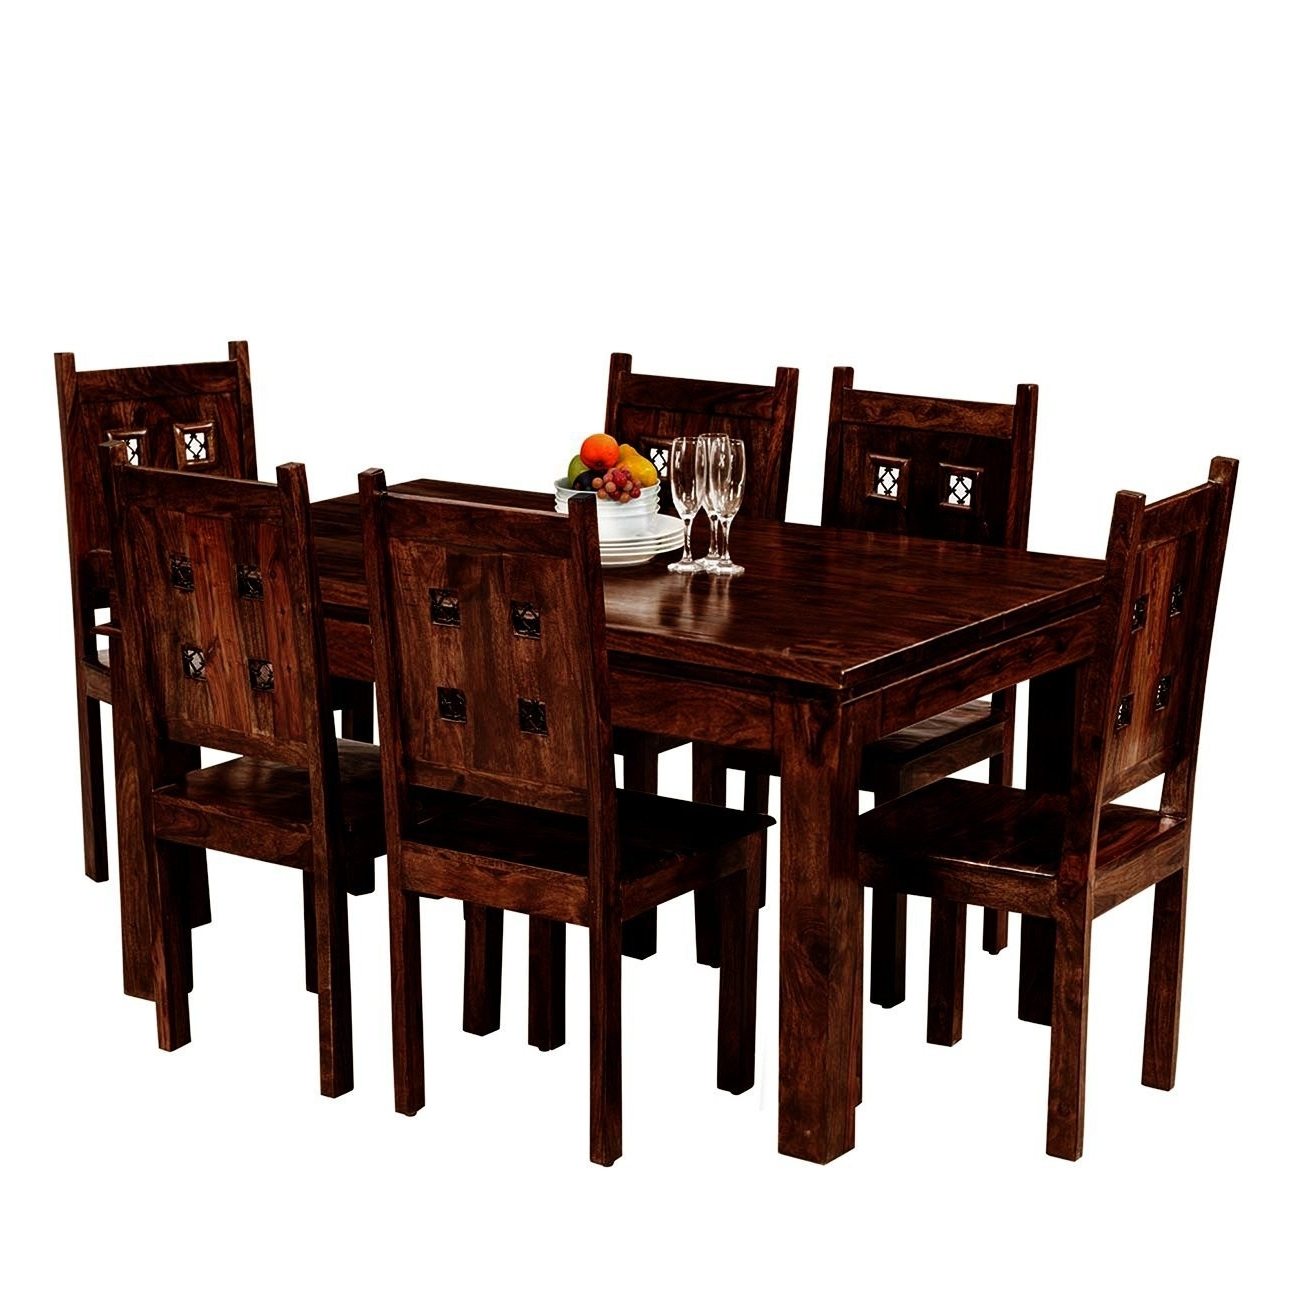 Most Recently Released Buy Wholesale Aprodz Salmanos 6 Seater Dining Table Set At Best Throughout Six Seater Dining Tables (View 13 of 25)